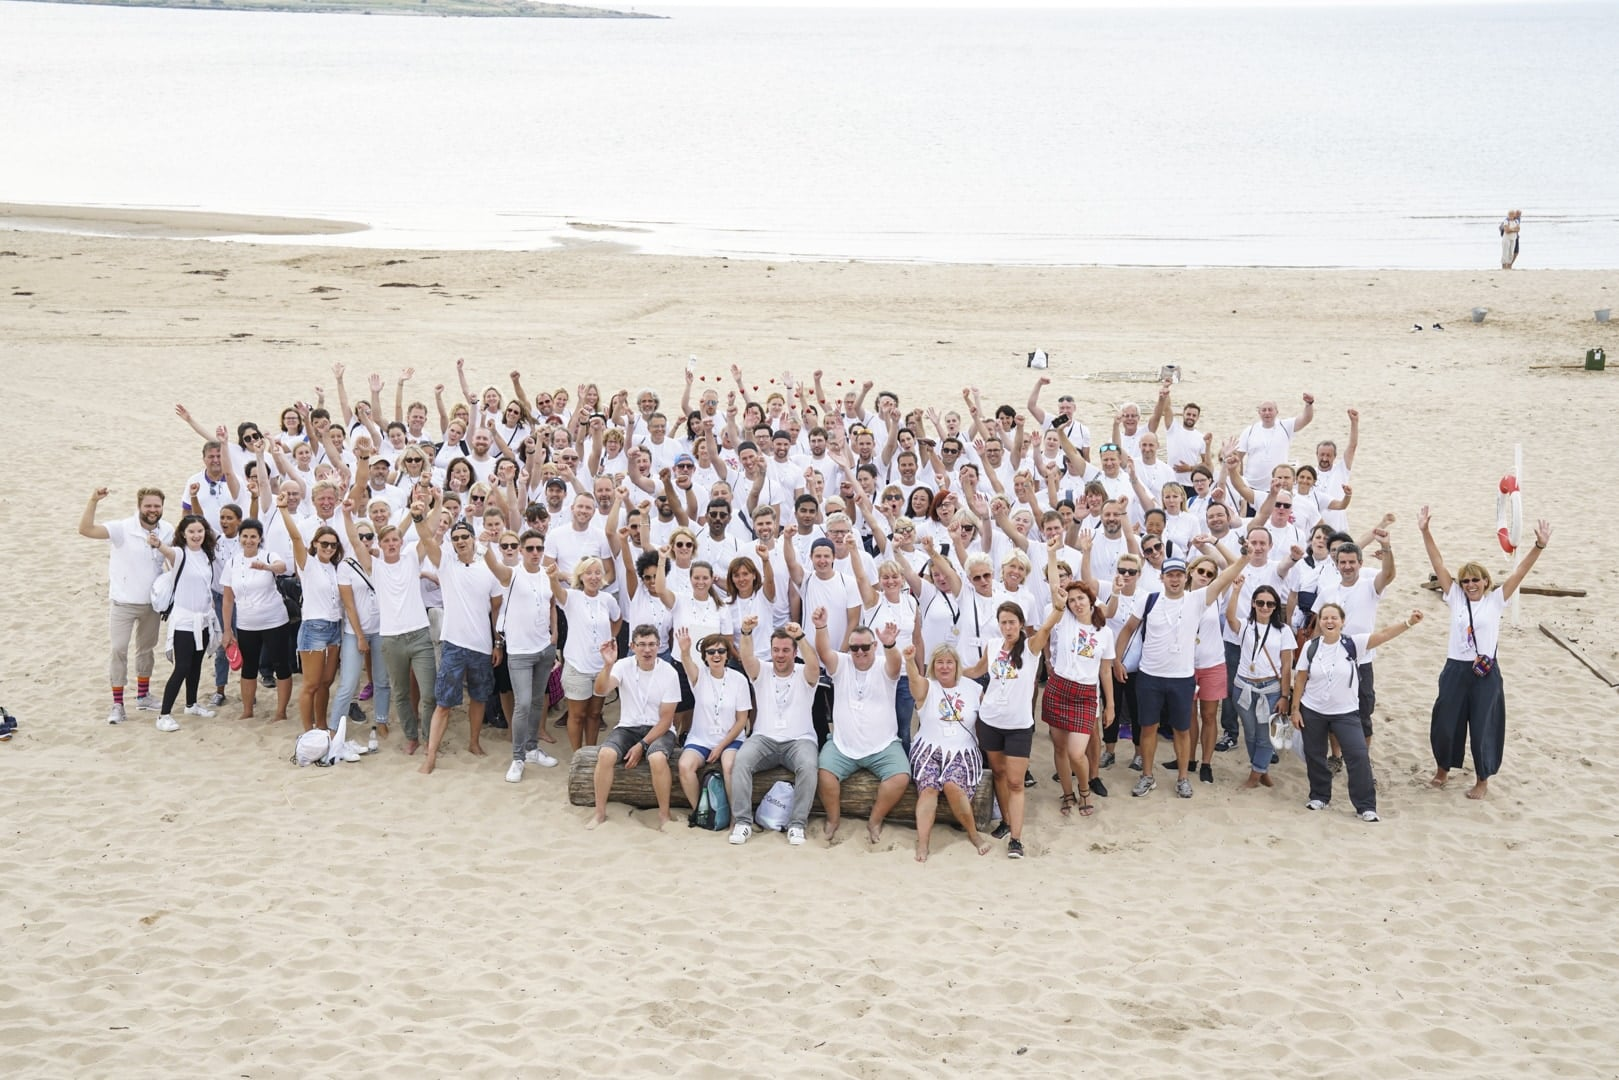 cellmark group photo on a beach